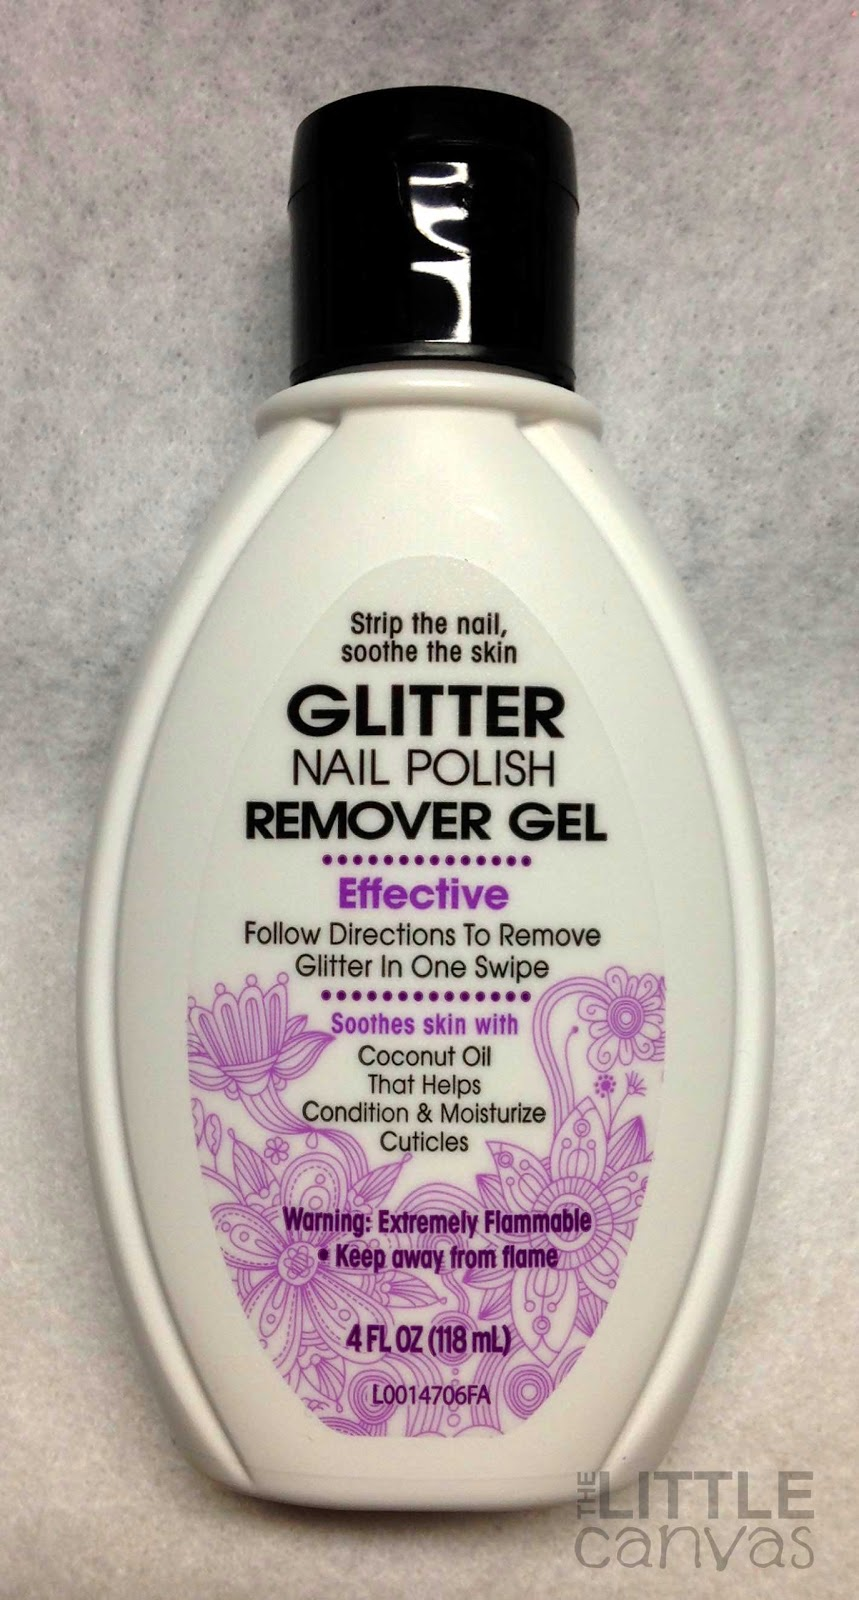 Glitter Nail Polish Remover Gel Review - The Little Canvas